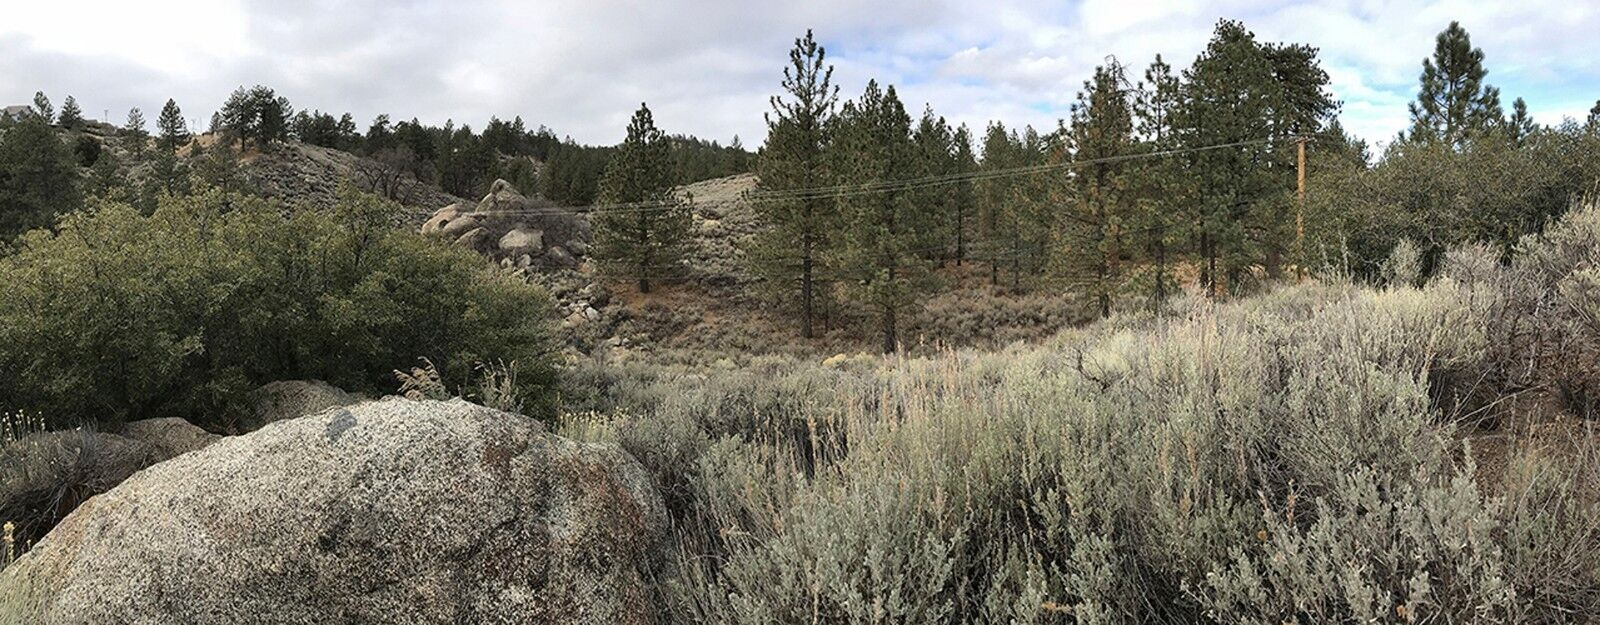 1.4 Acre Vacant Land in the Tehachapi Mountains. Beautiful w Trees and Vista